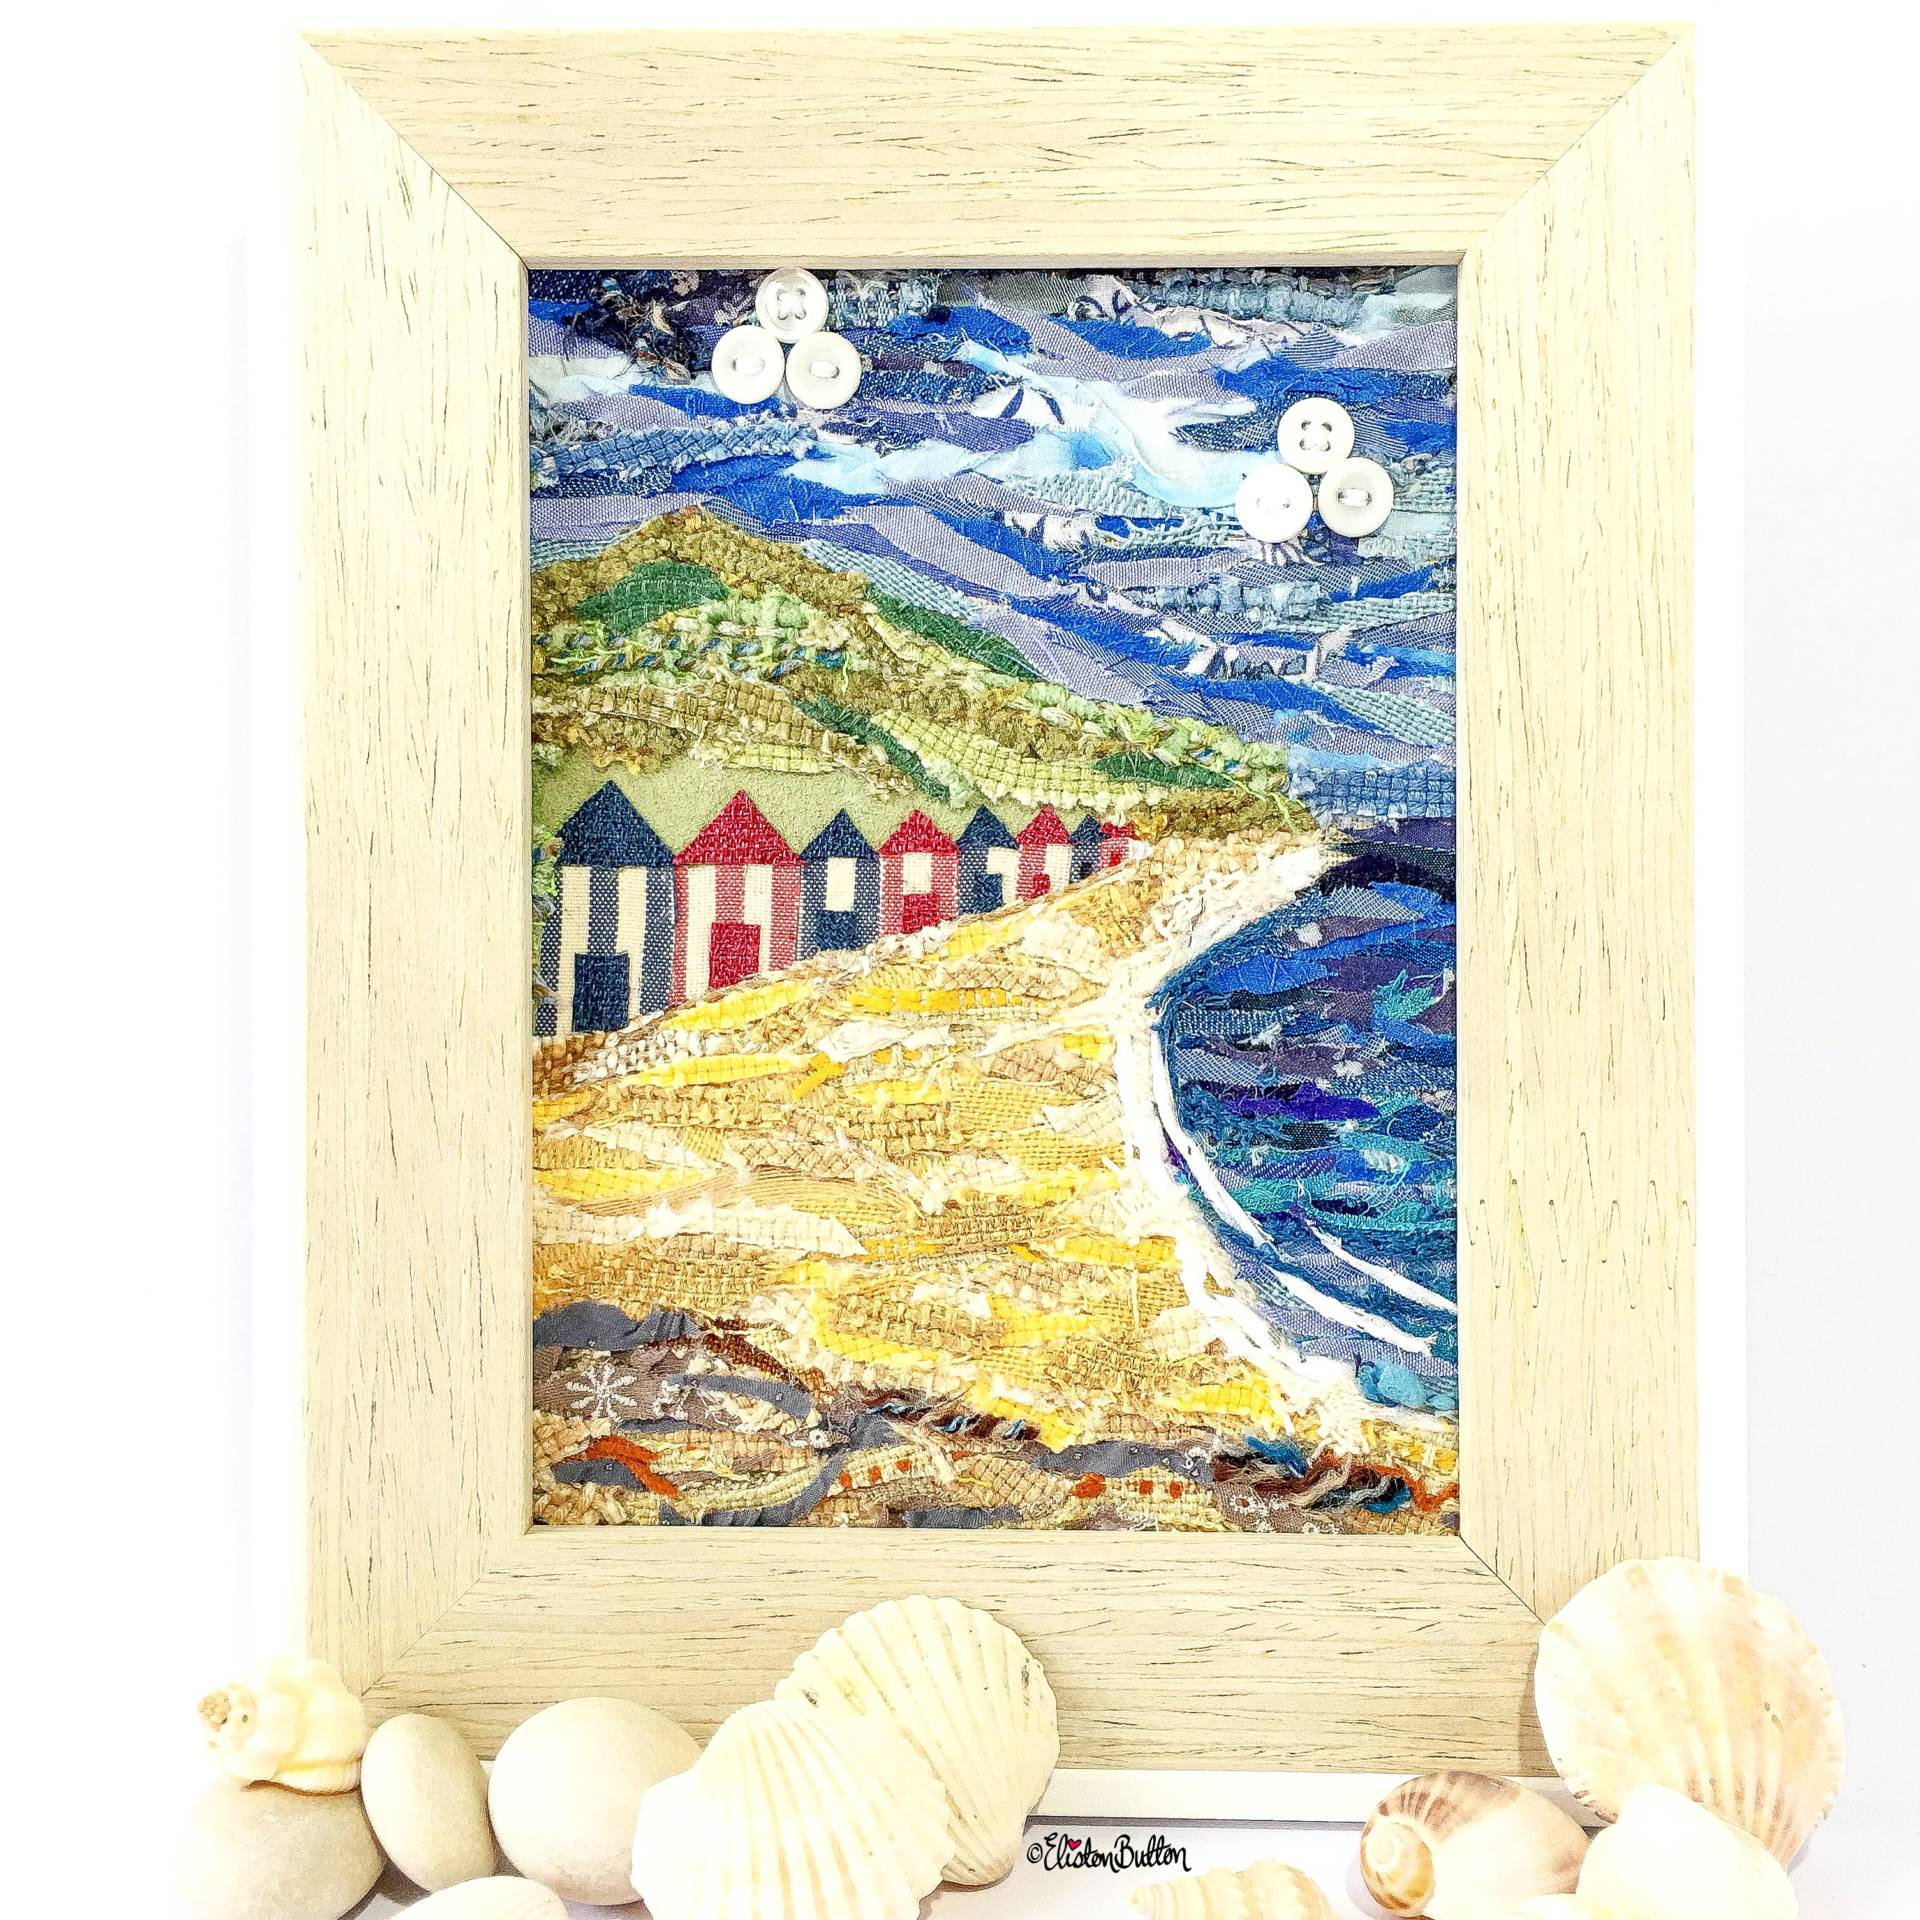 Beach Huts by the Sea Original Fabric Collage by Eliston Button - Eliston Button is Four! at www.elistonbutton.com - Eliston Button - That Crafty Kid – Art, Design, Craft & Adventure.